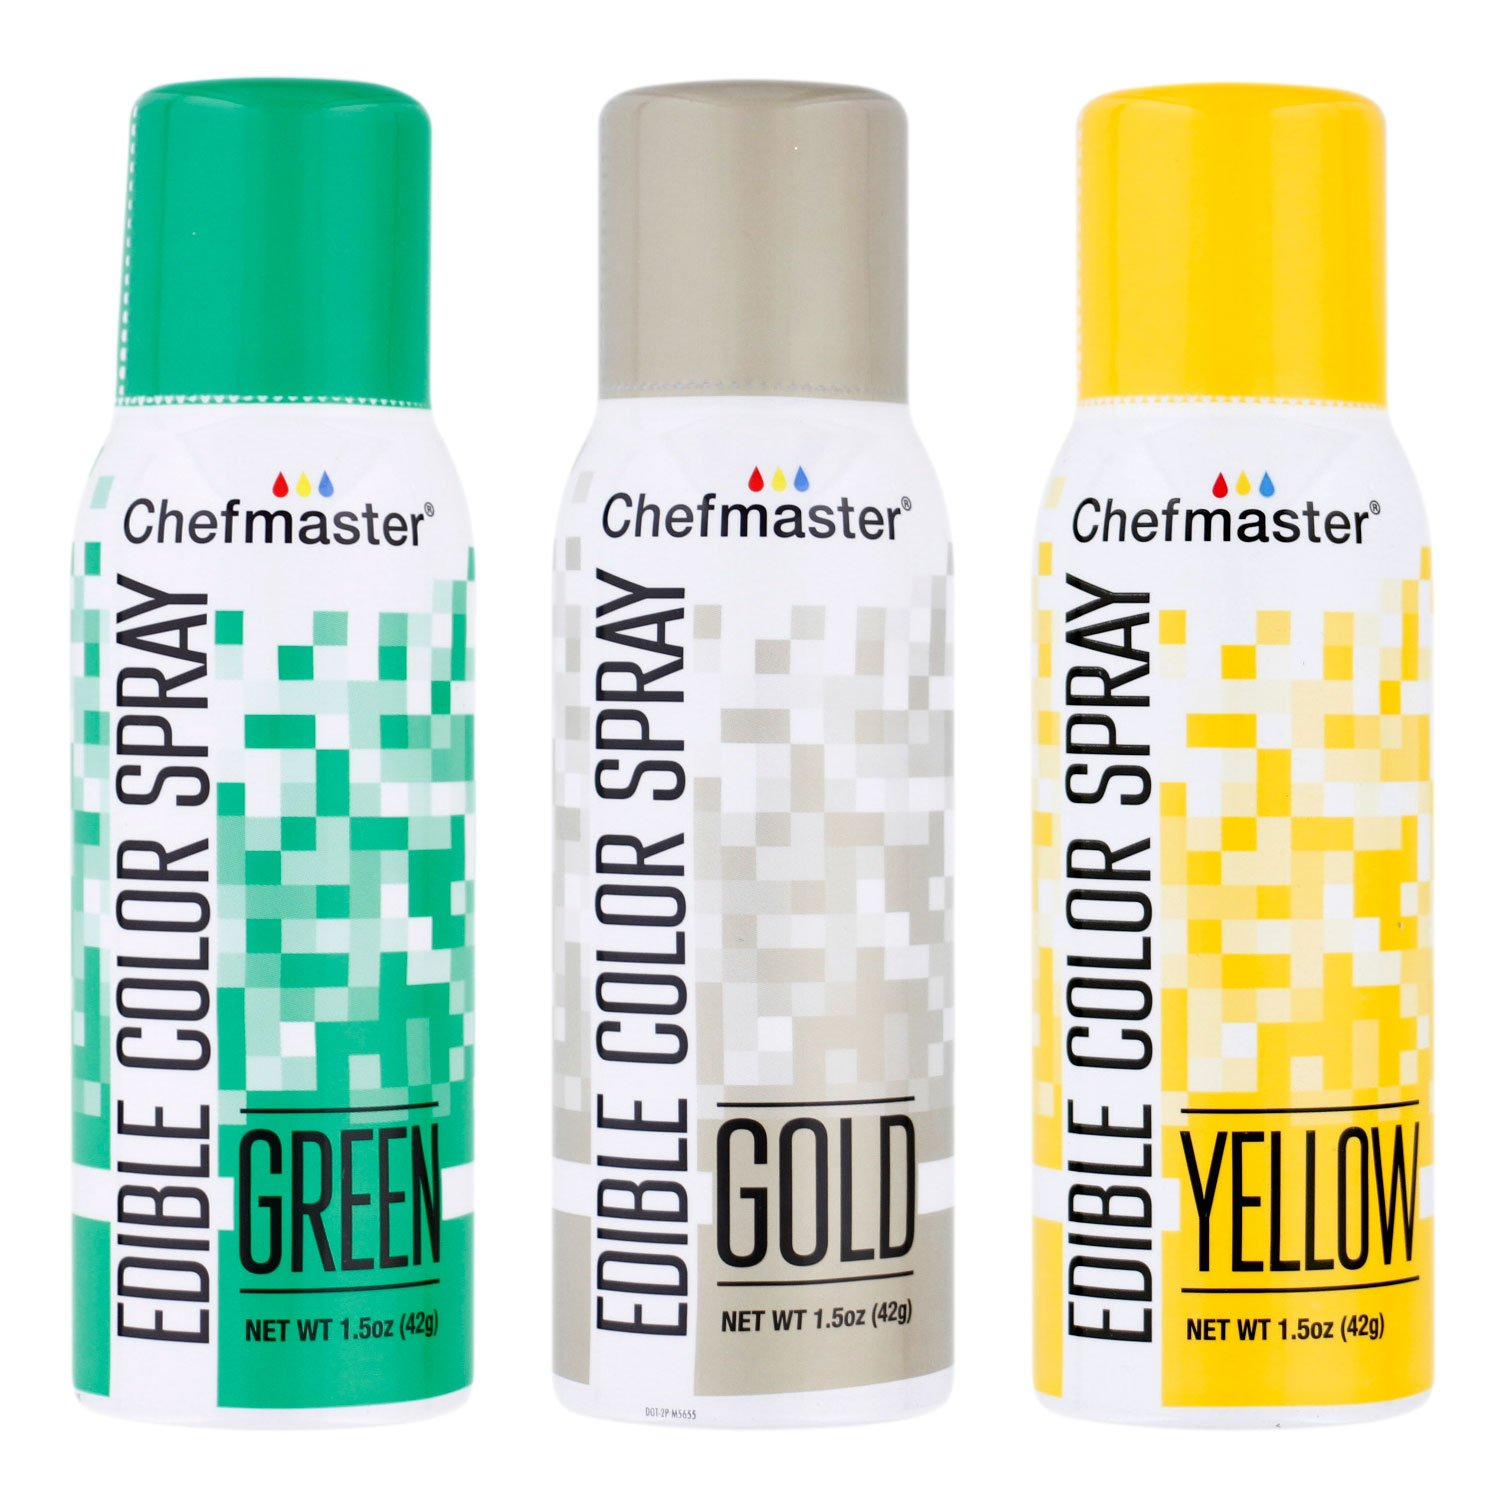 U.S. Cake Supply by Chefmaster Edible Spray Cake Decorating Color St Patricks Theme 3-Pack - 1.5 ounce Cans (Gold, Green, Yellow) by U.S. Cake Supply